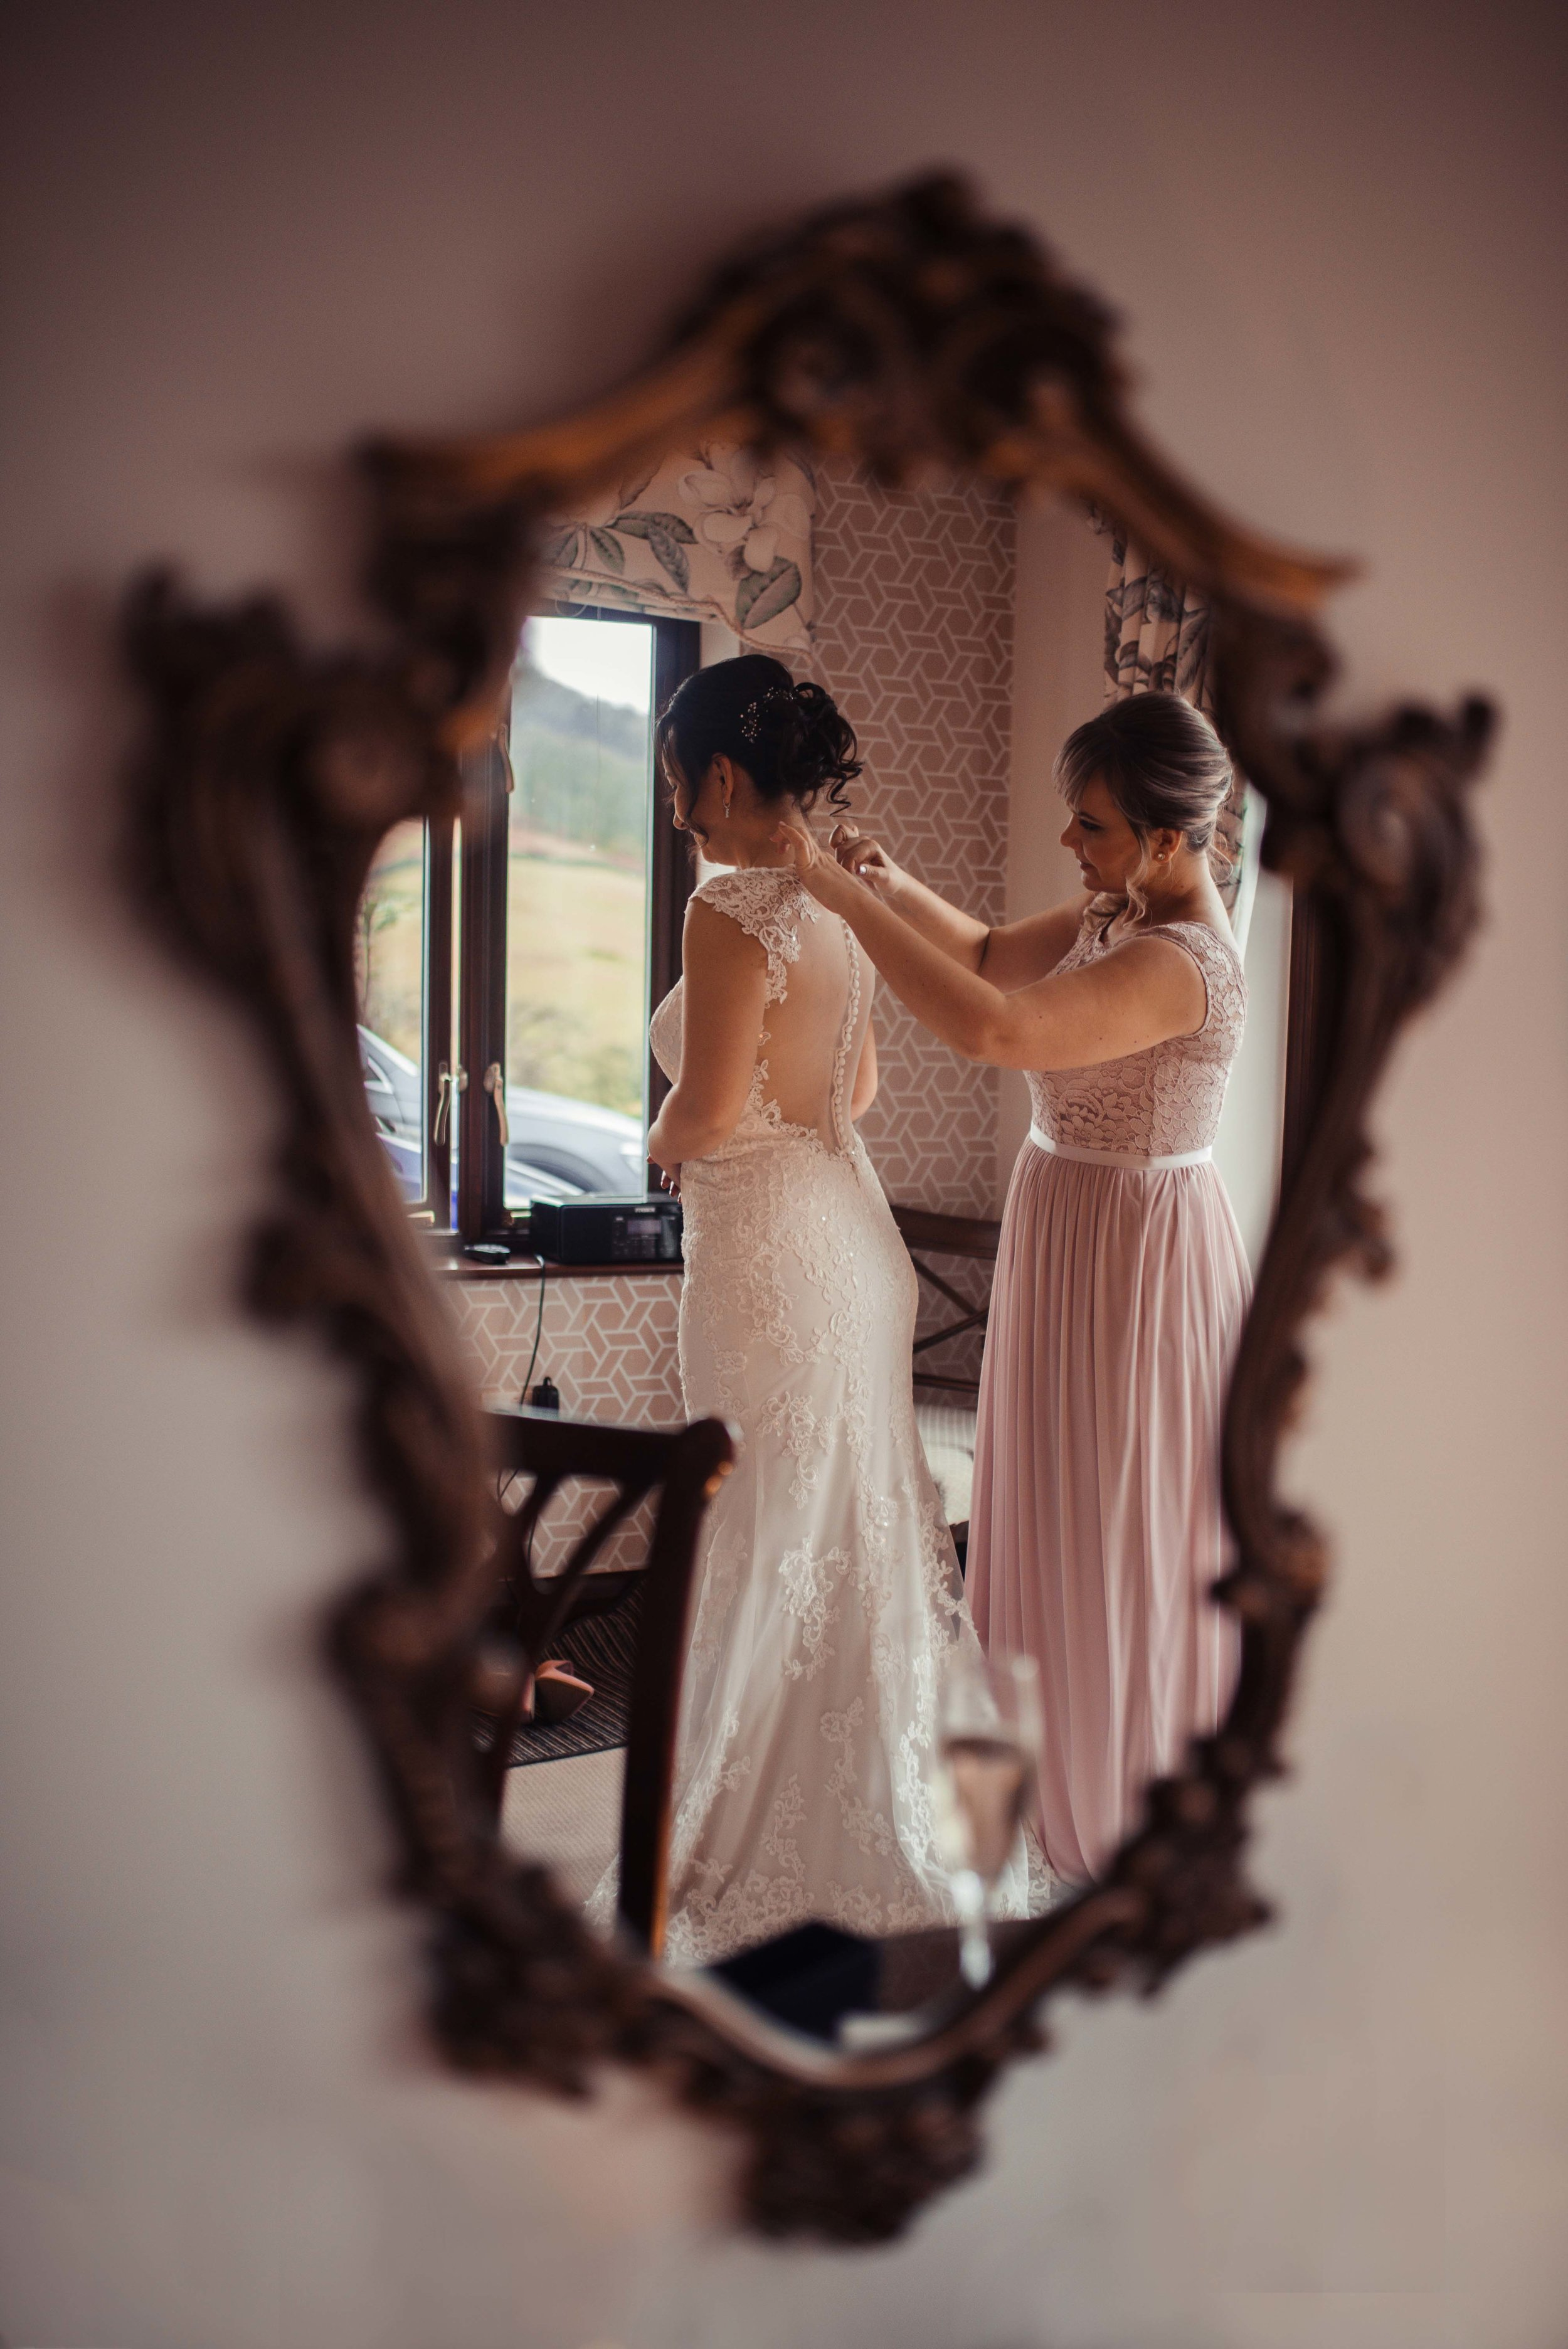 The bridesmaid helping the bride with the final touches of her dress, as seen through a mirror